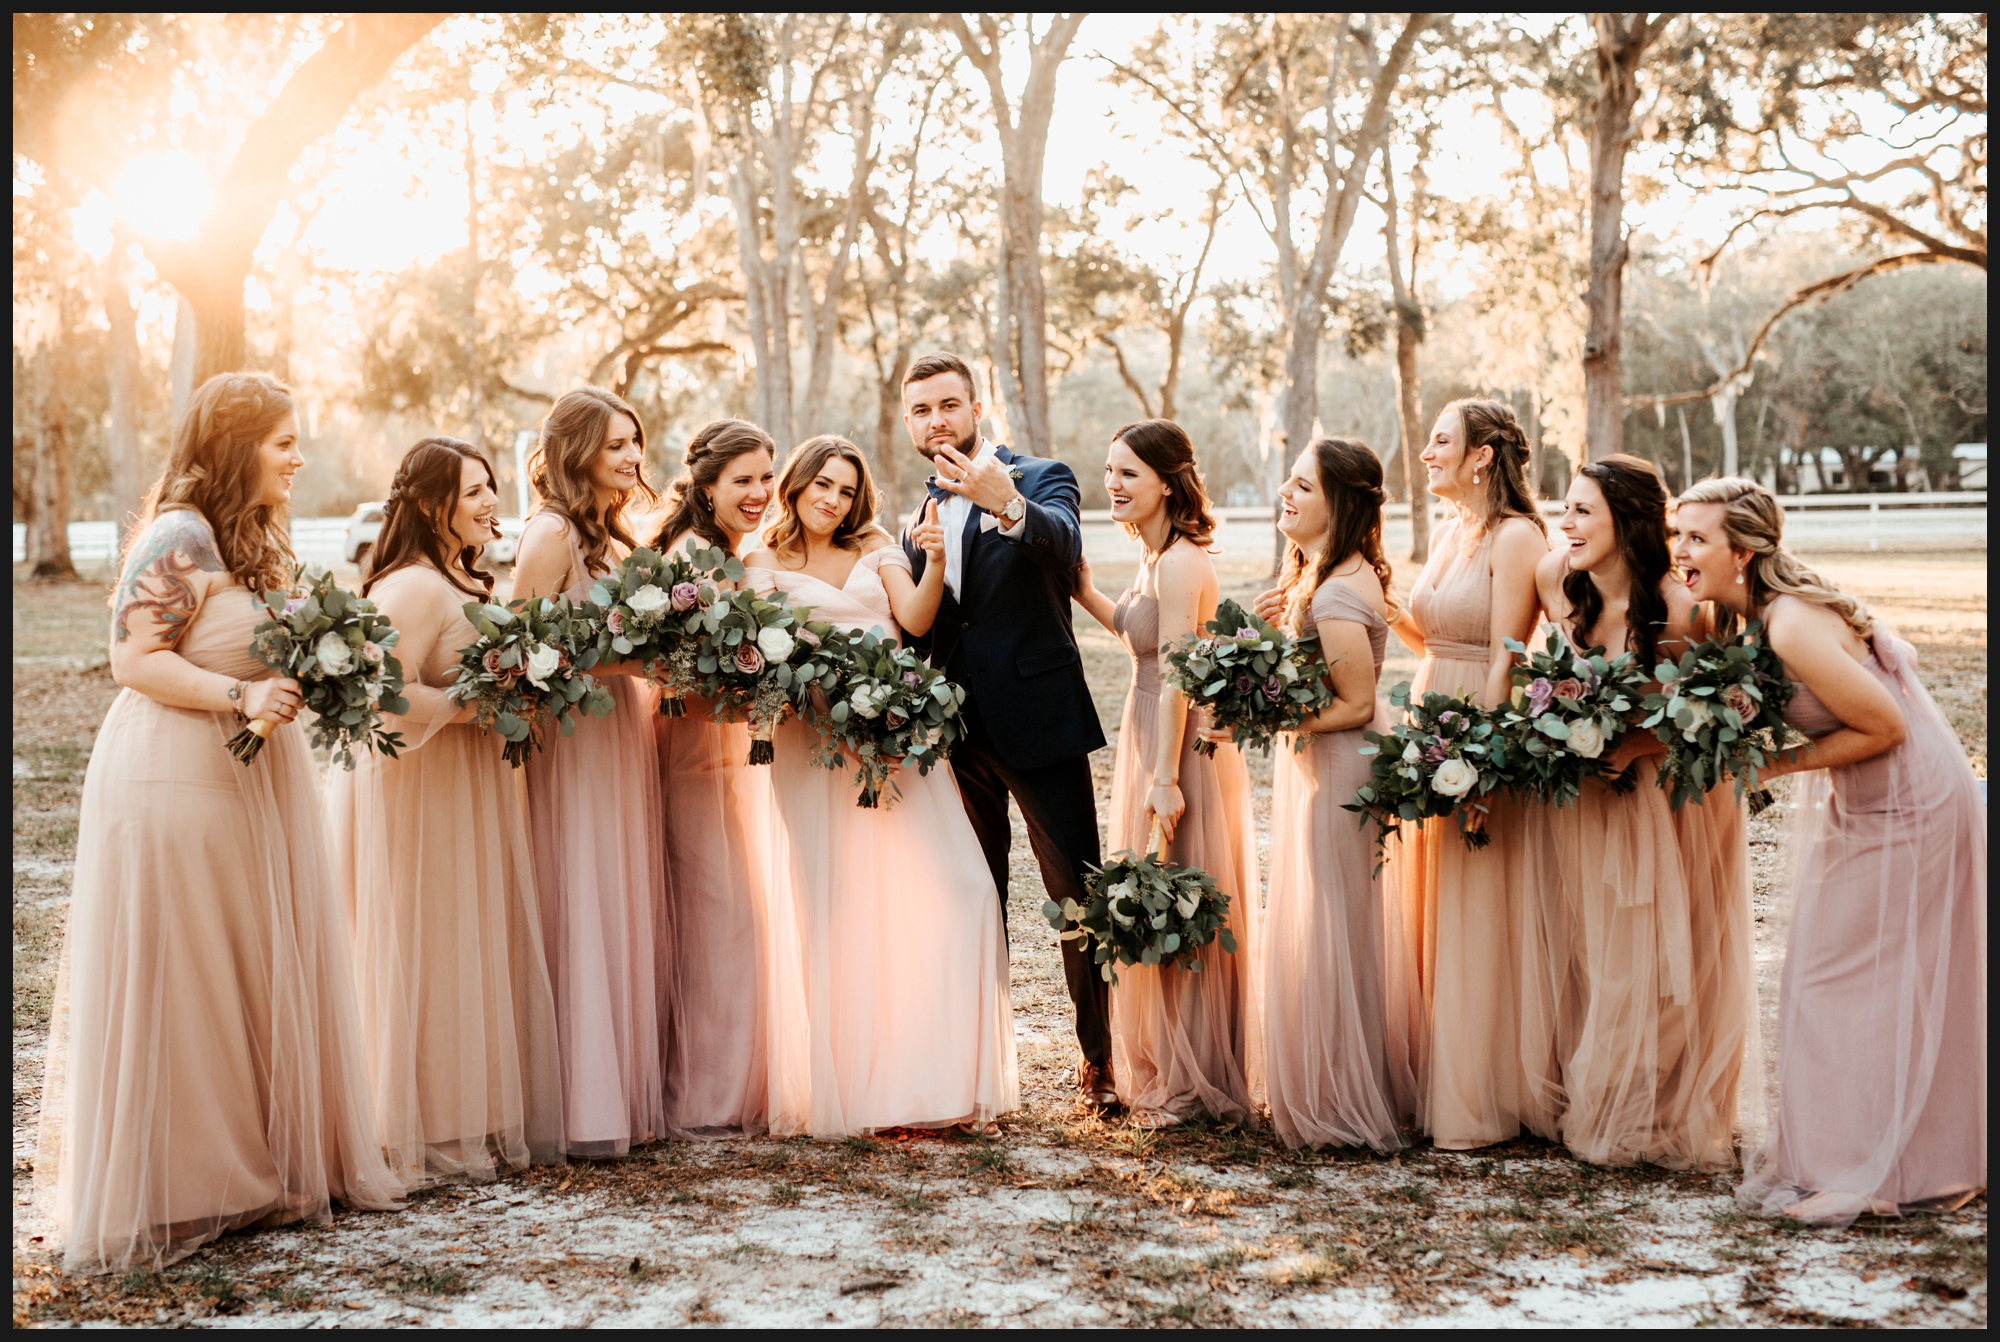 Orlando-Wedding-Photographer-destination-wedding-photographer-florida-wedding-photographer-bohemian-wedding-photographer_1104.jpg